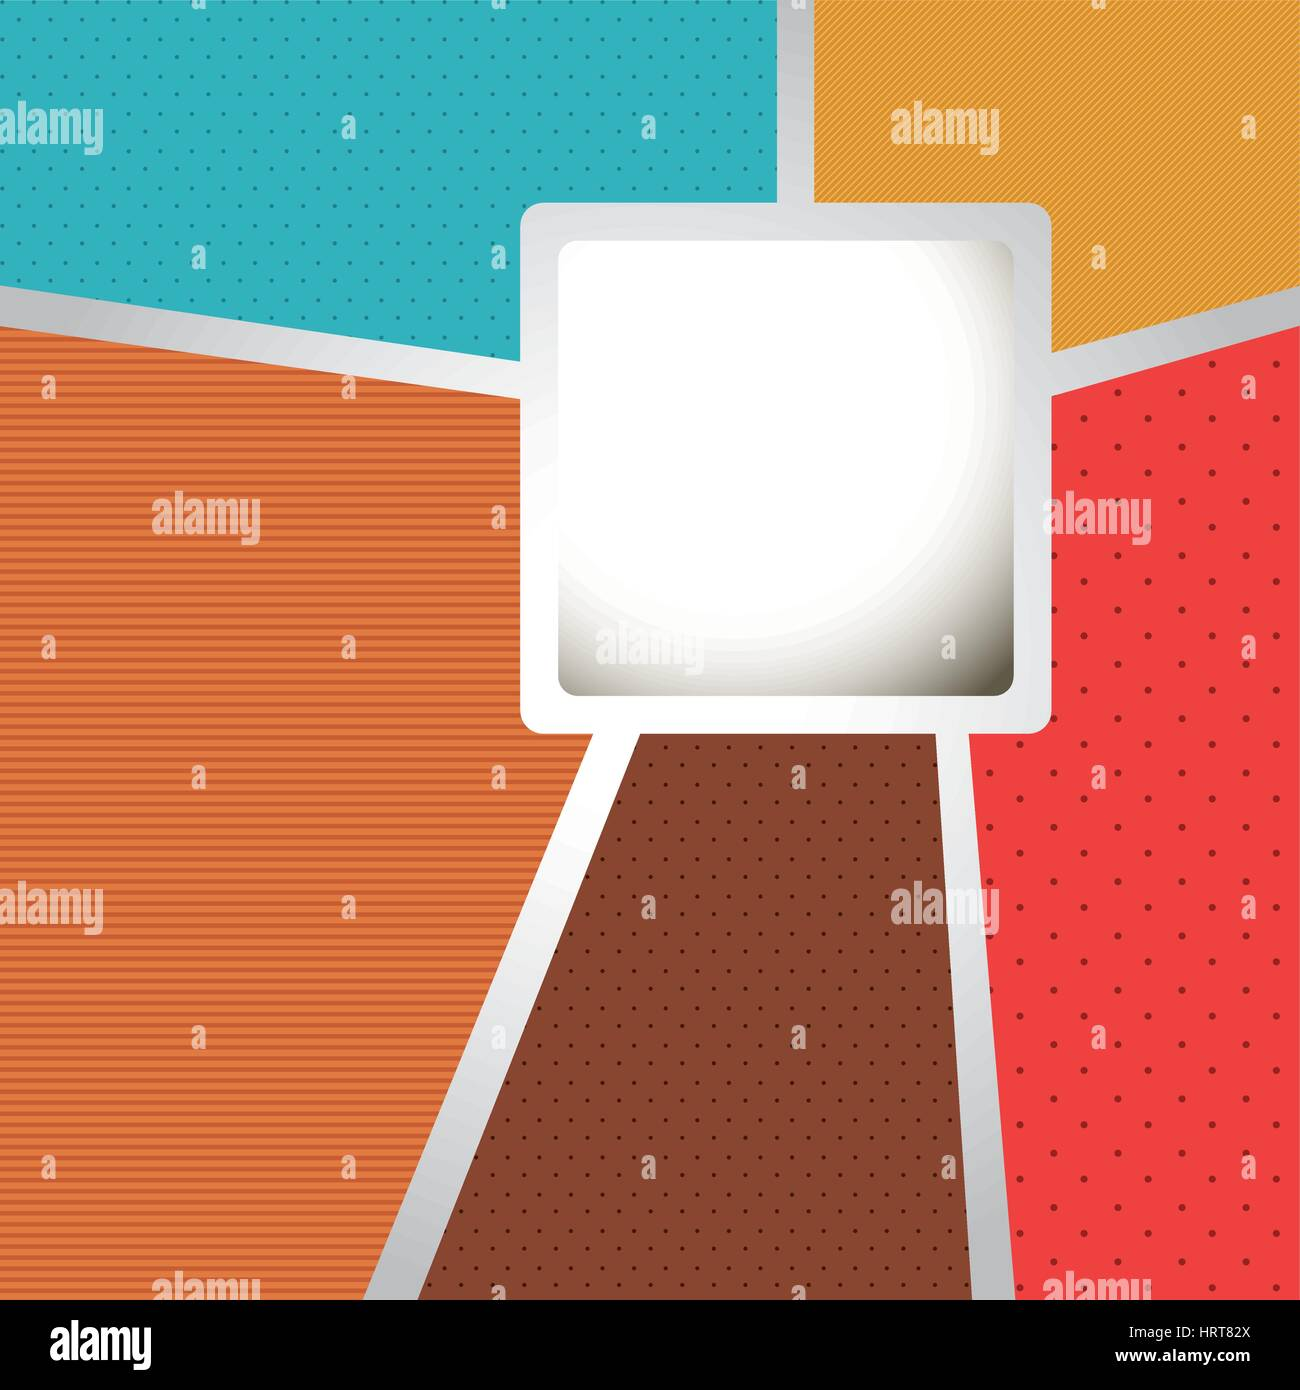 colors with squard background icon - Stock Vector